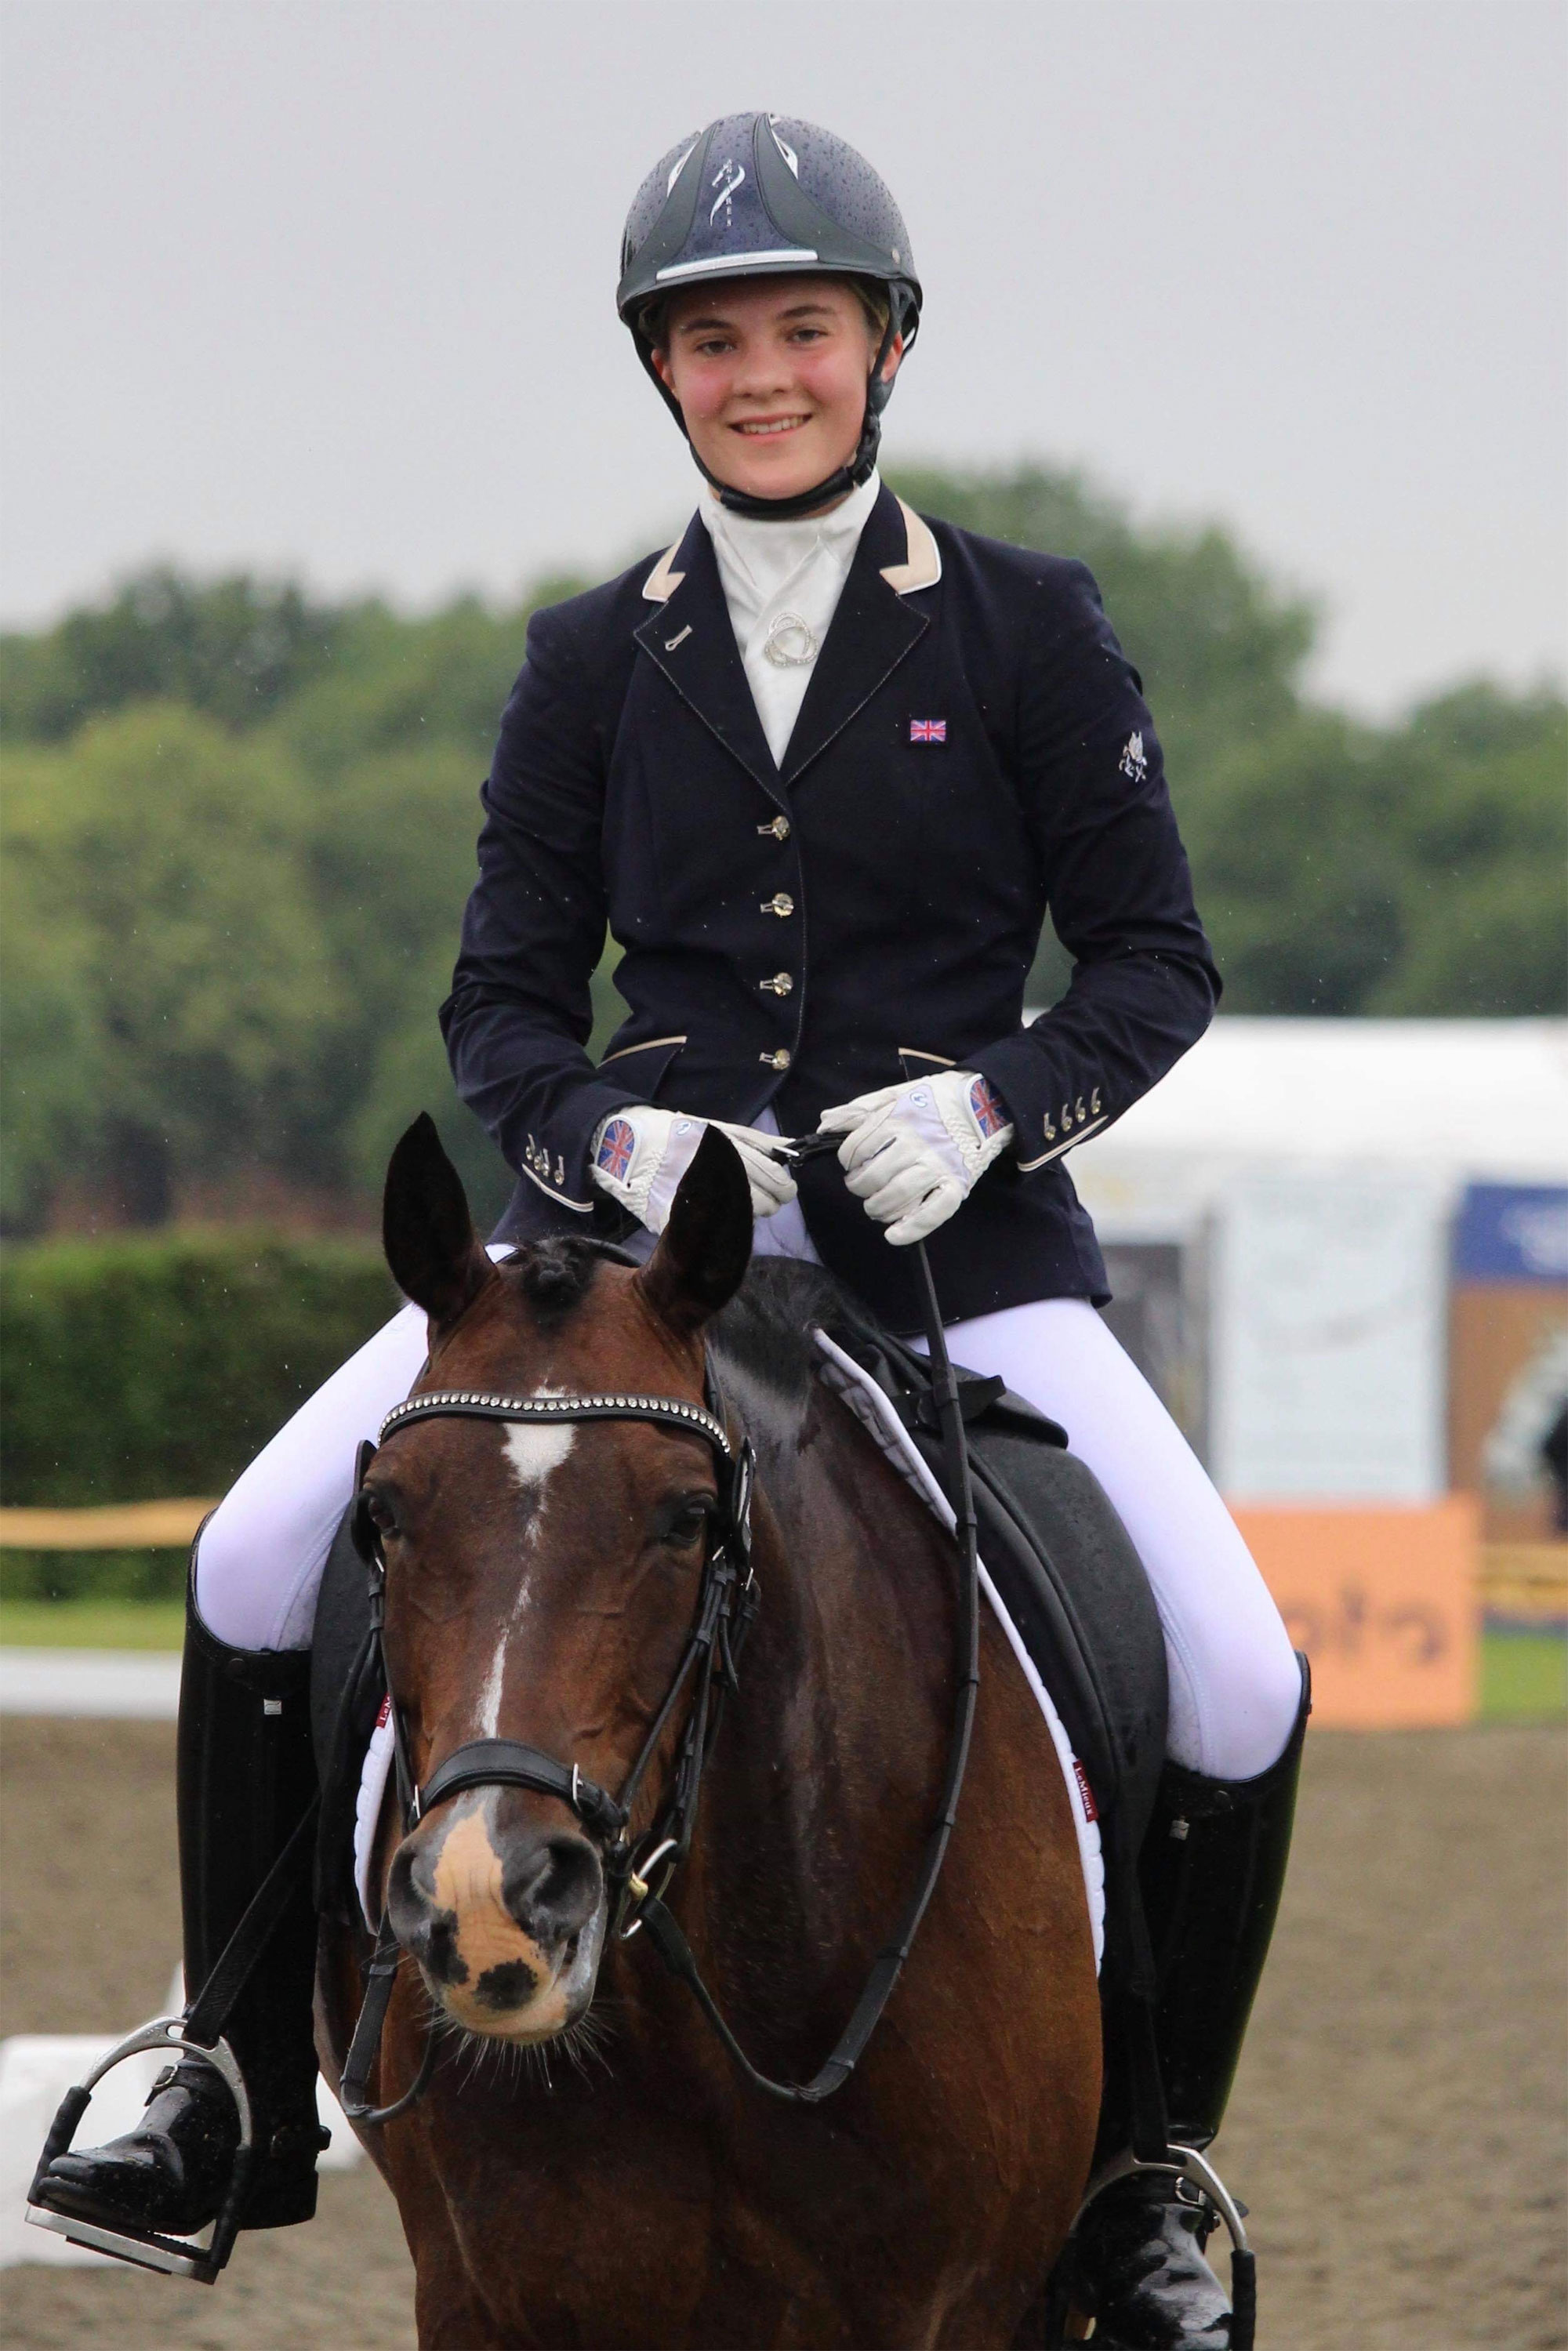 Olivia Whitelaw and Leo at Hickstead CDIP